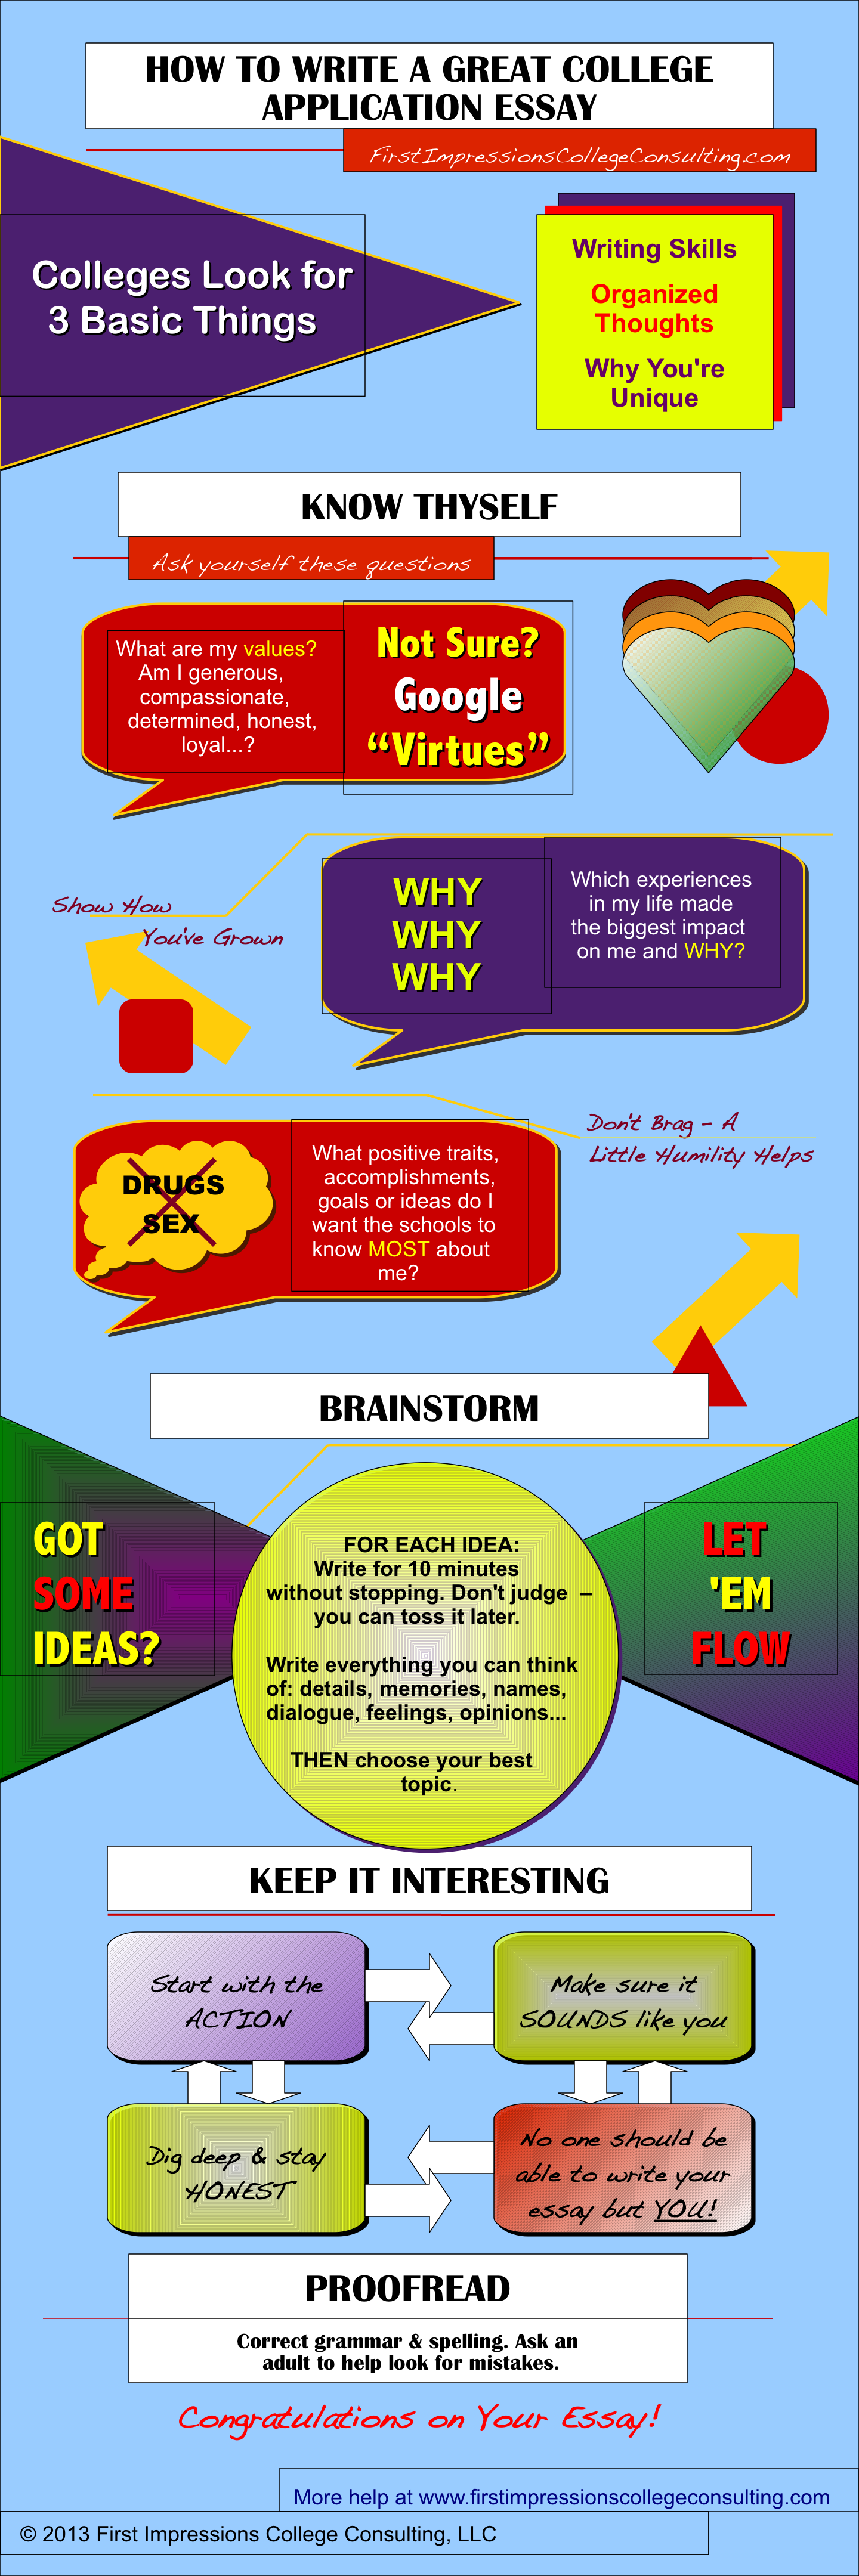 how to write a great college application essay infographic - Writing The College Application Essay